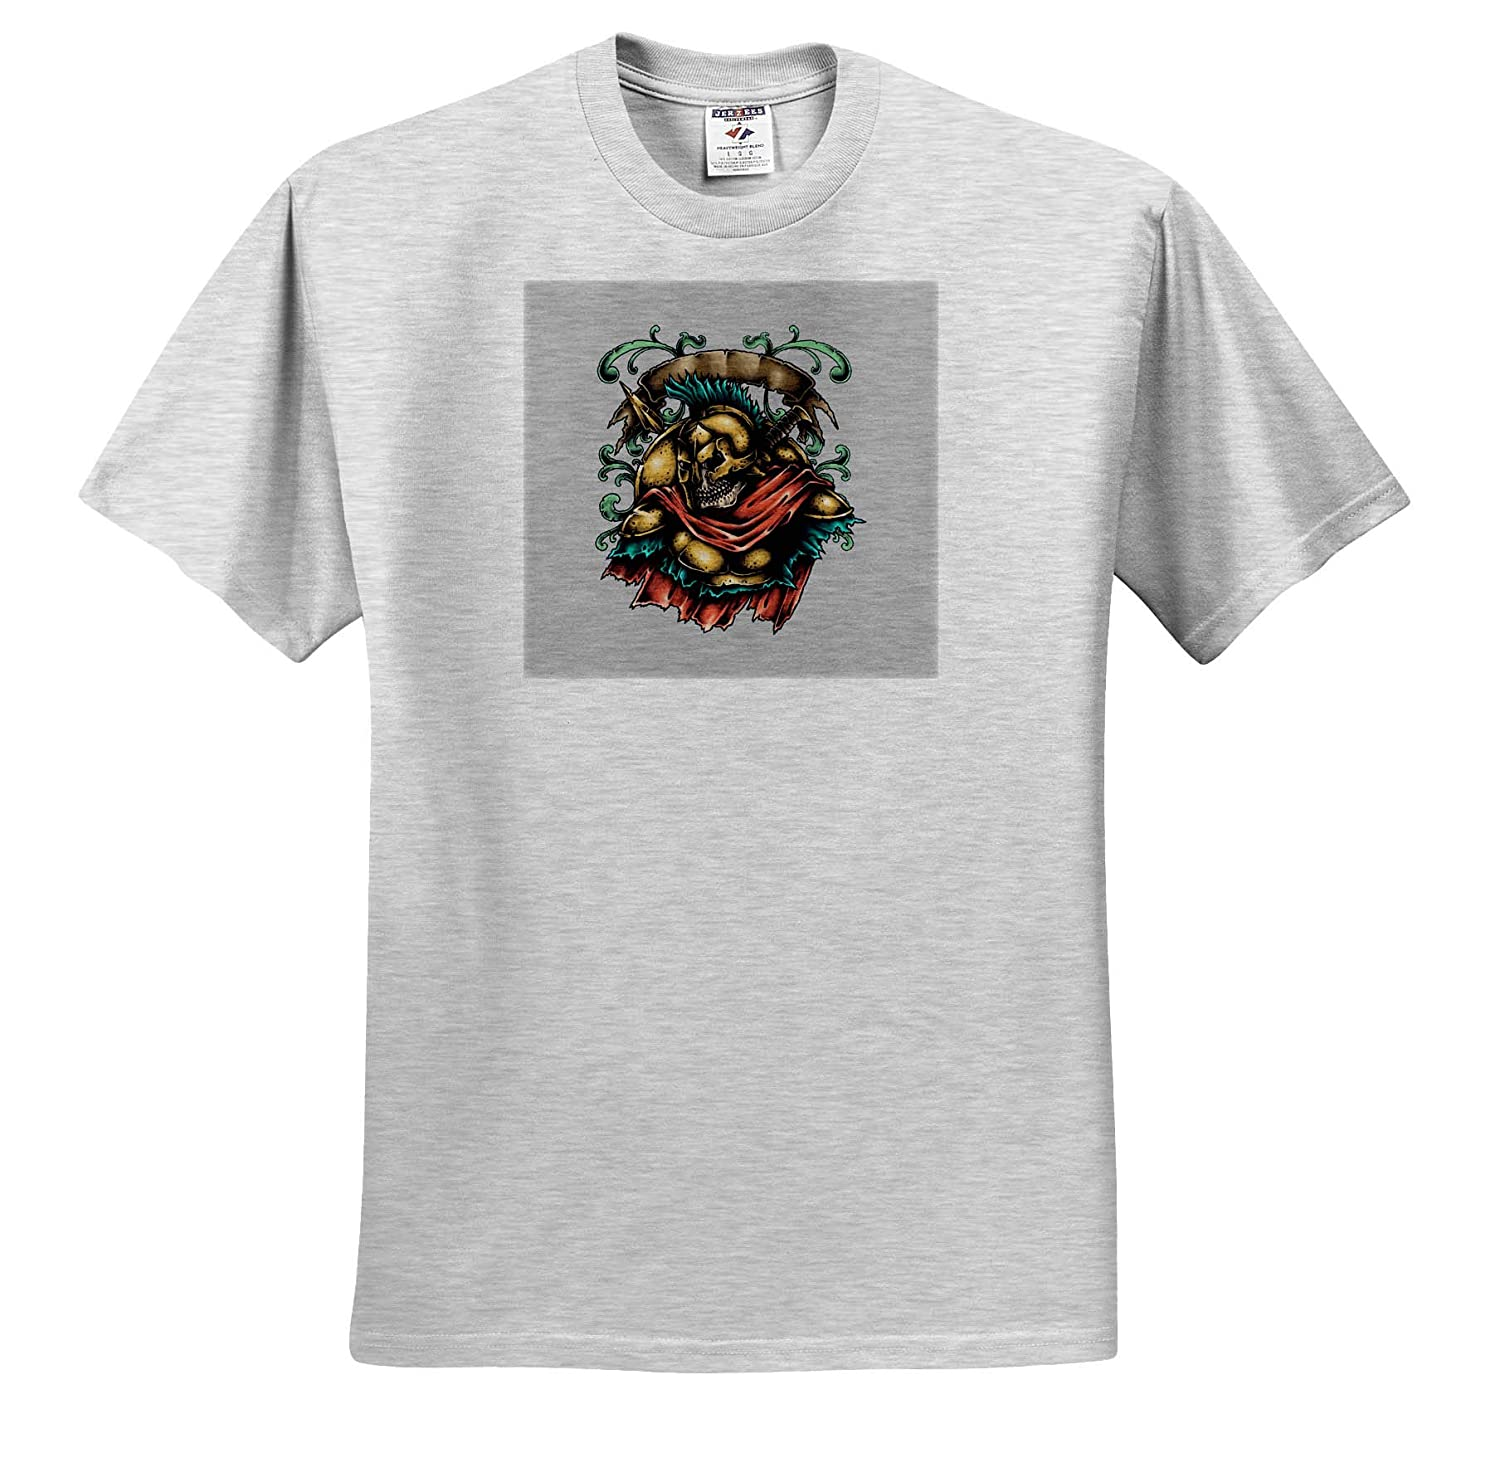 T-Shirts Skull Colorful Image of Skull and Ancient Greek Armor 3dRose Alexis Design